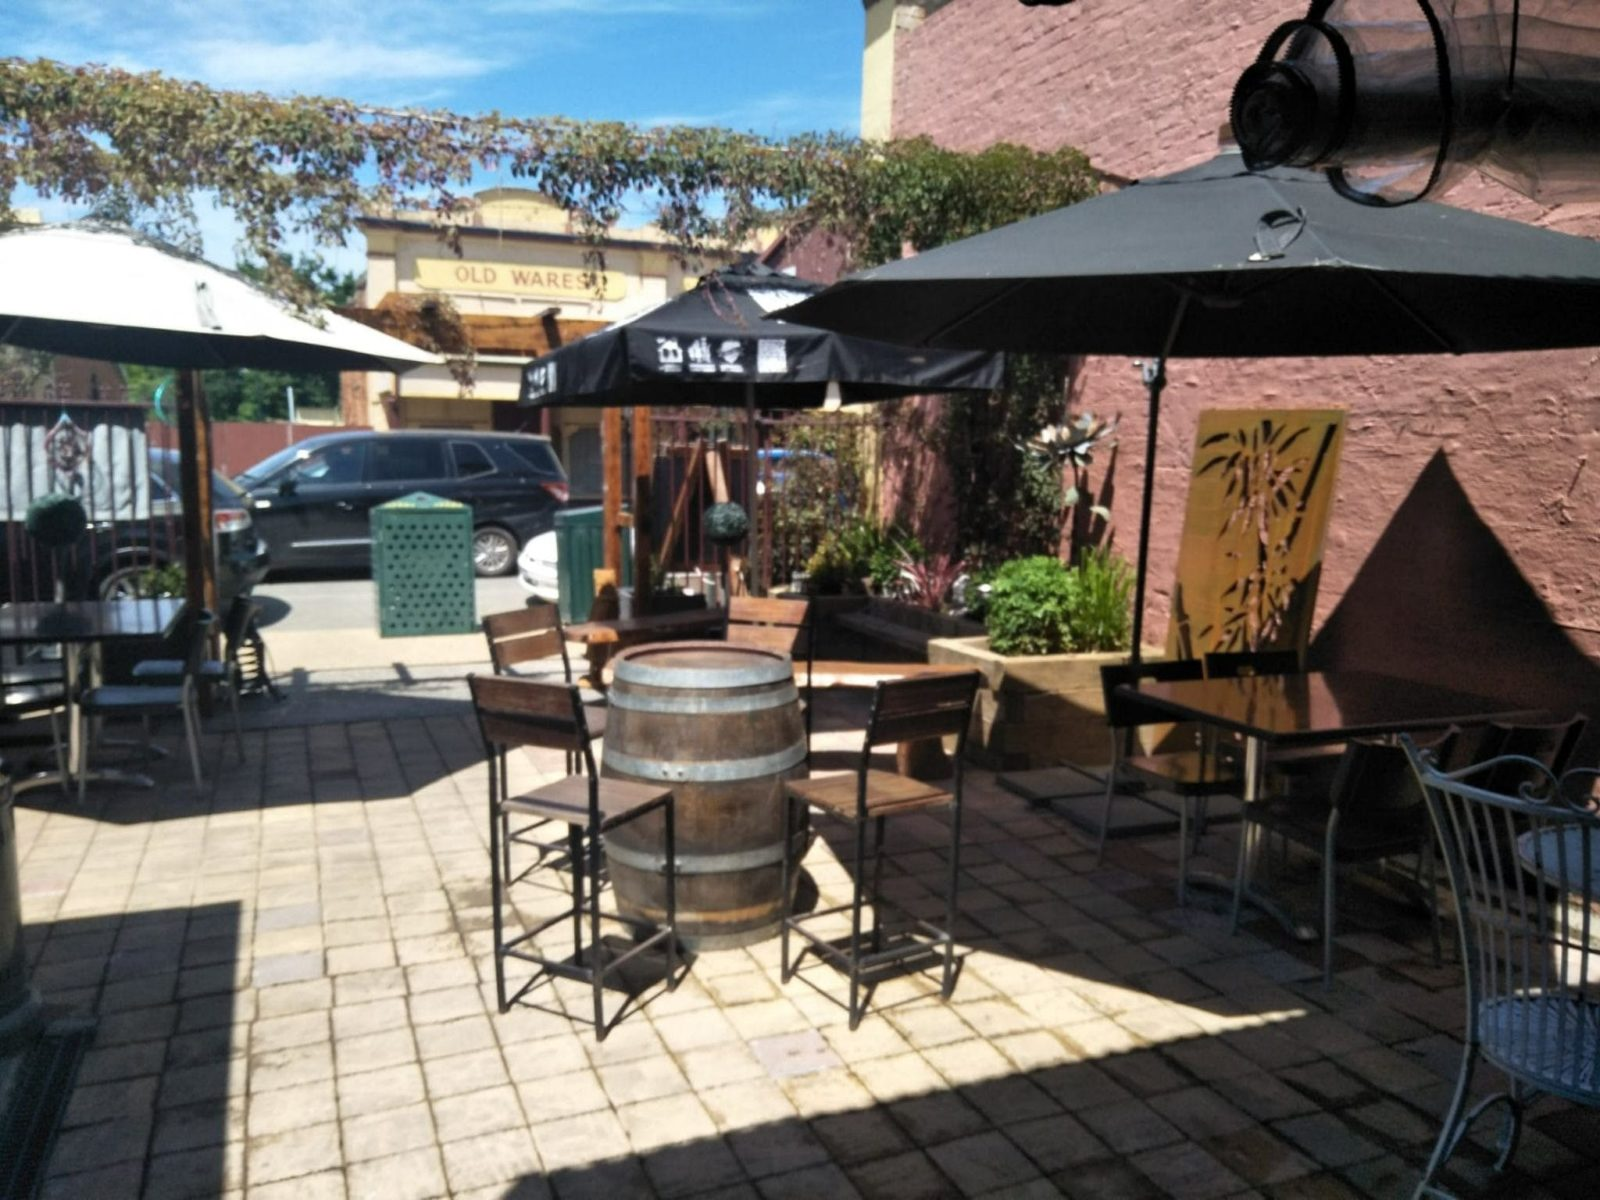 Sunny day in the courtyard, high bar stools around wine barrel table, red brick wall behind